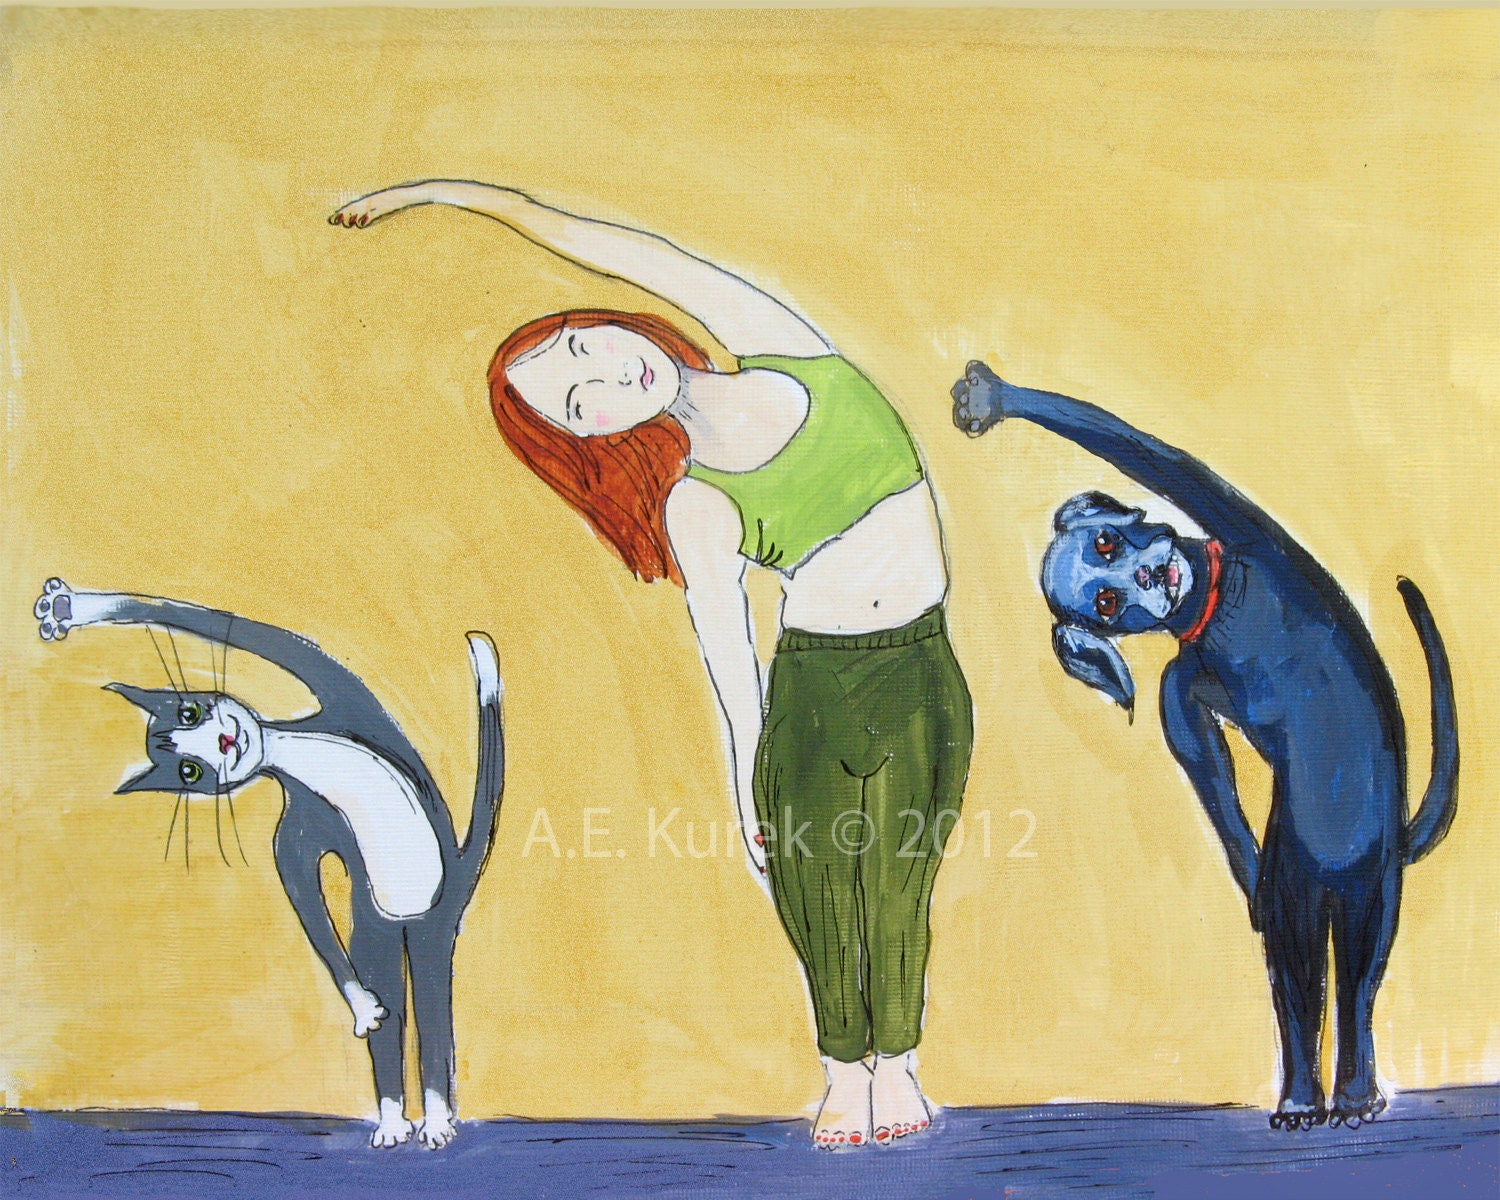 Cute Yoga Dogs Yoga art cat and dog yoga